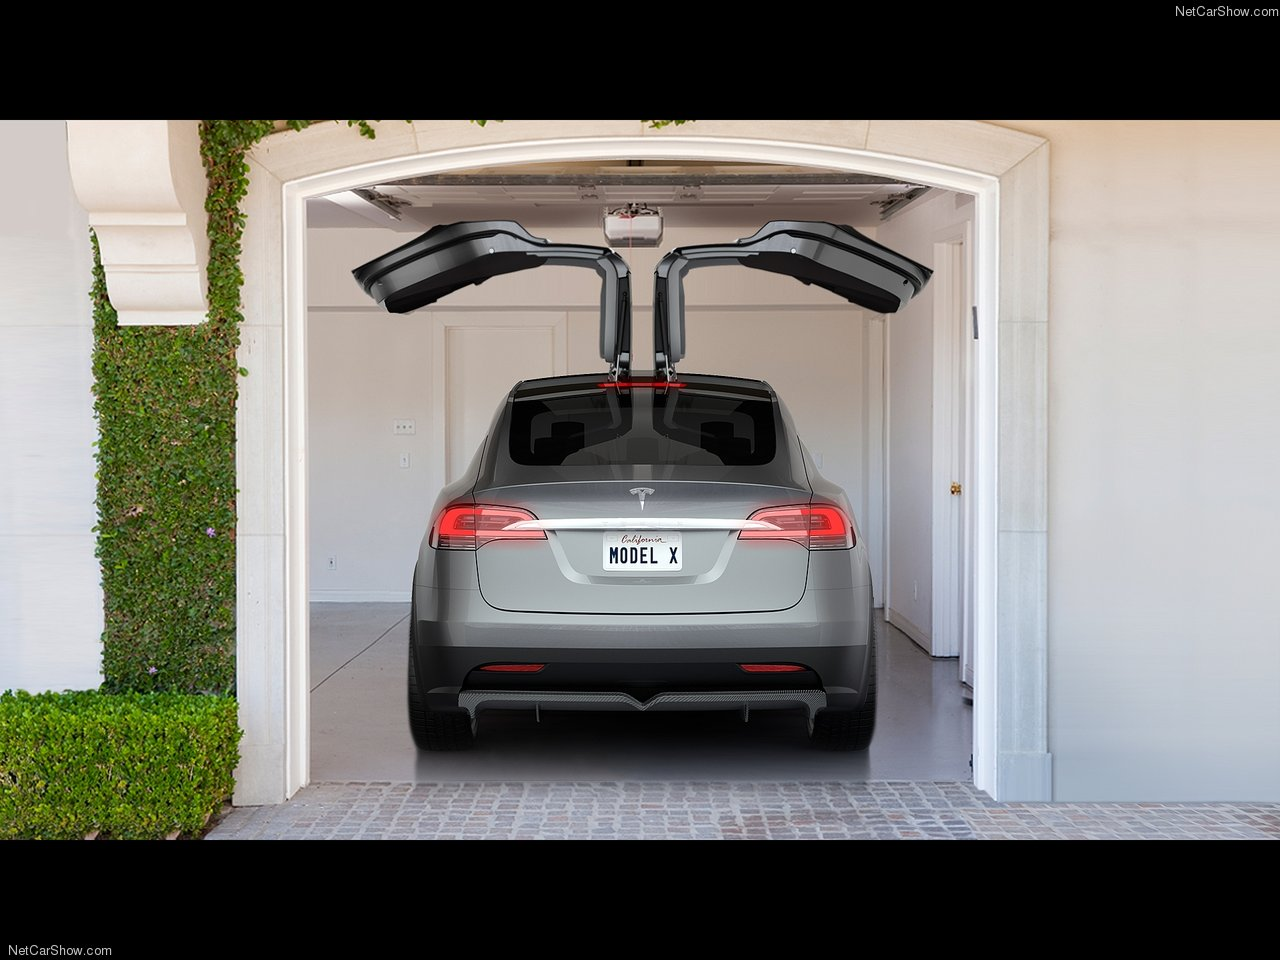 Television model x valuable information